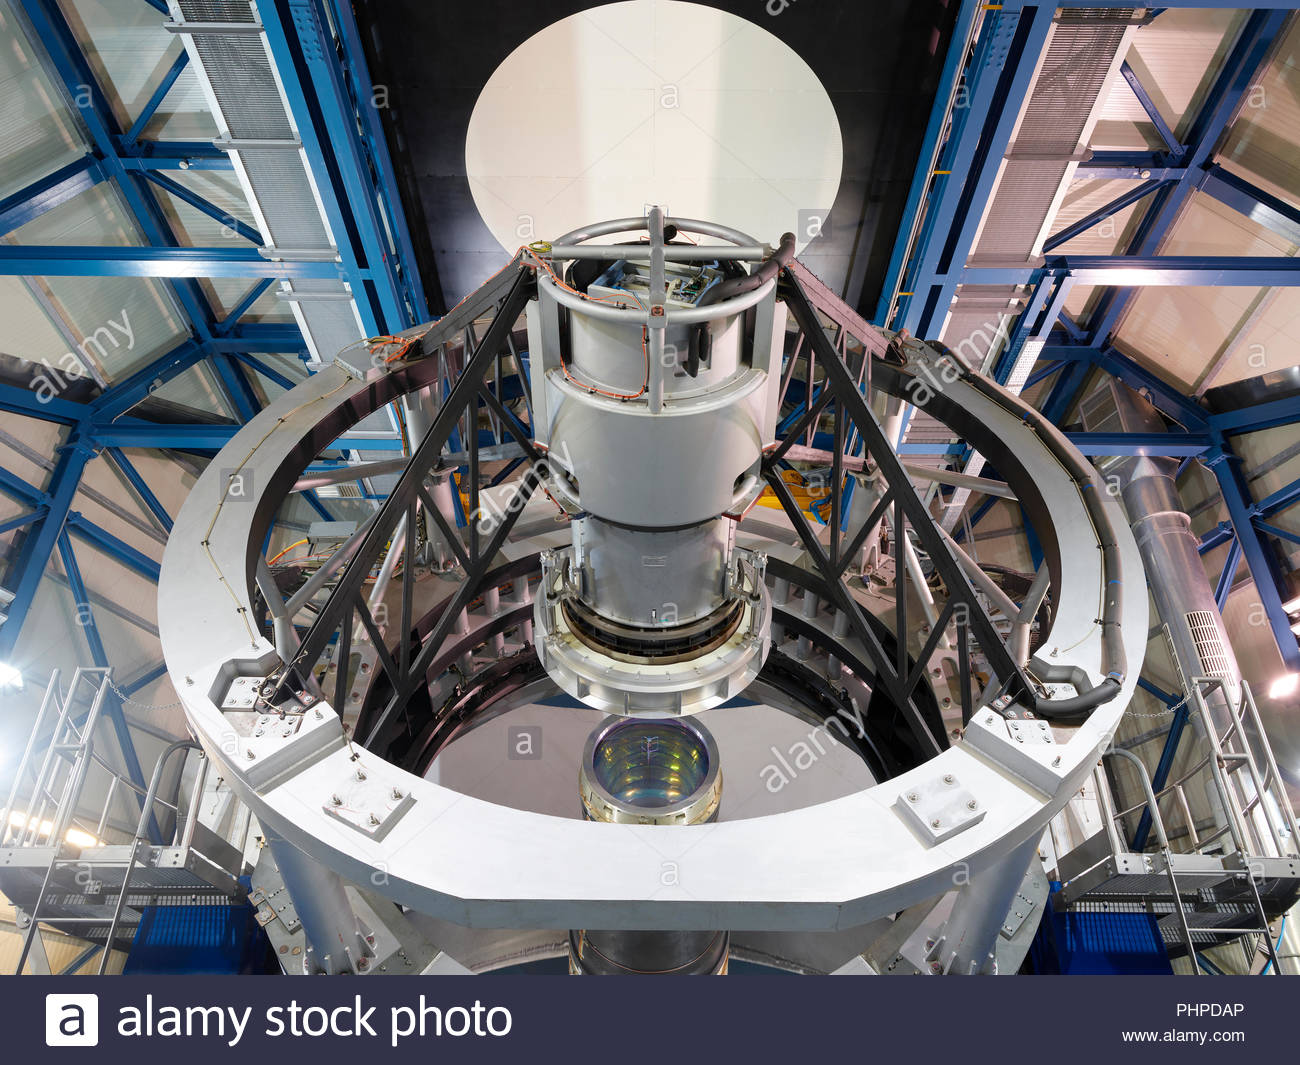 Low angle view of a telescope lens at Paranal Observatory - Stock Image